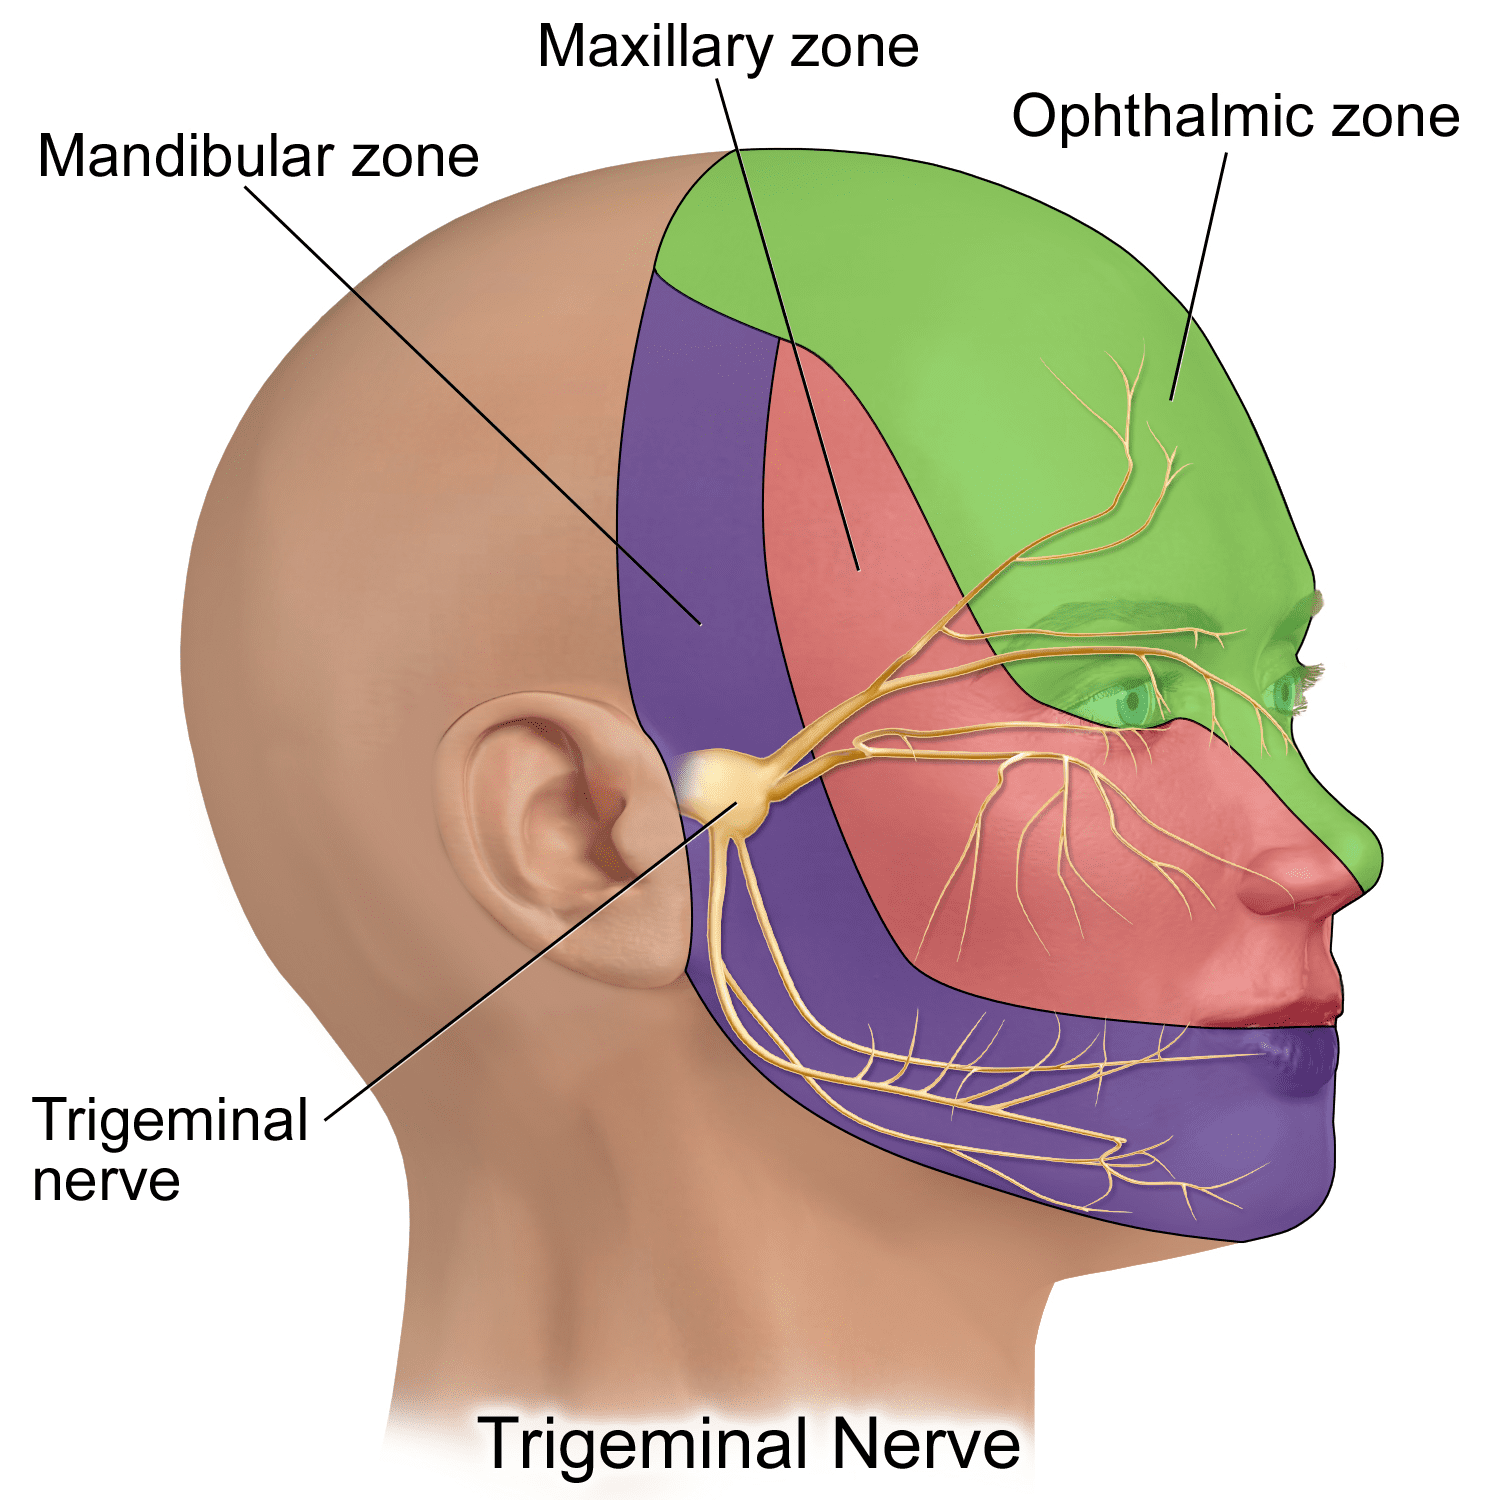 Trigeminal nerve innervation. Credit: Bruce Blaus via Wikimedia Commons.